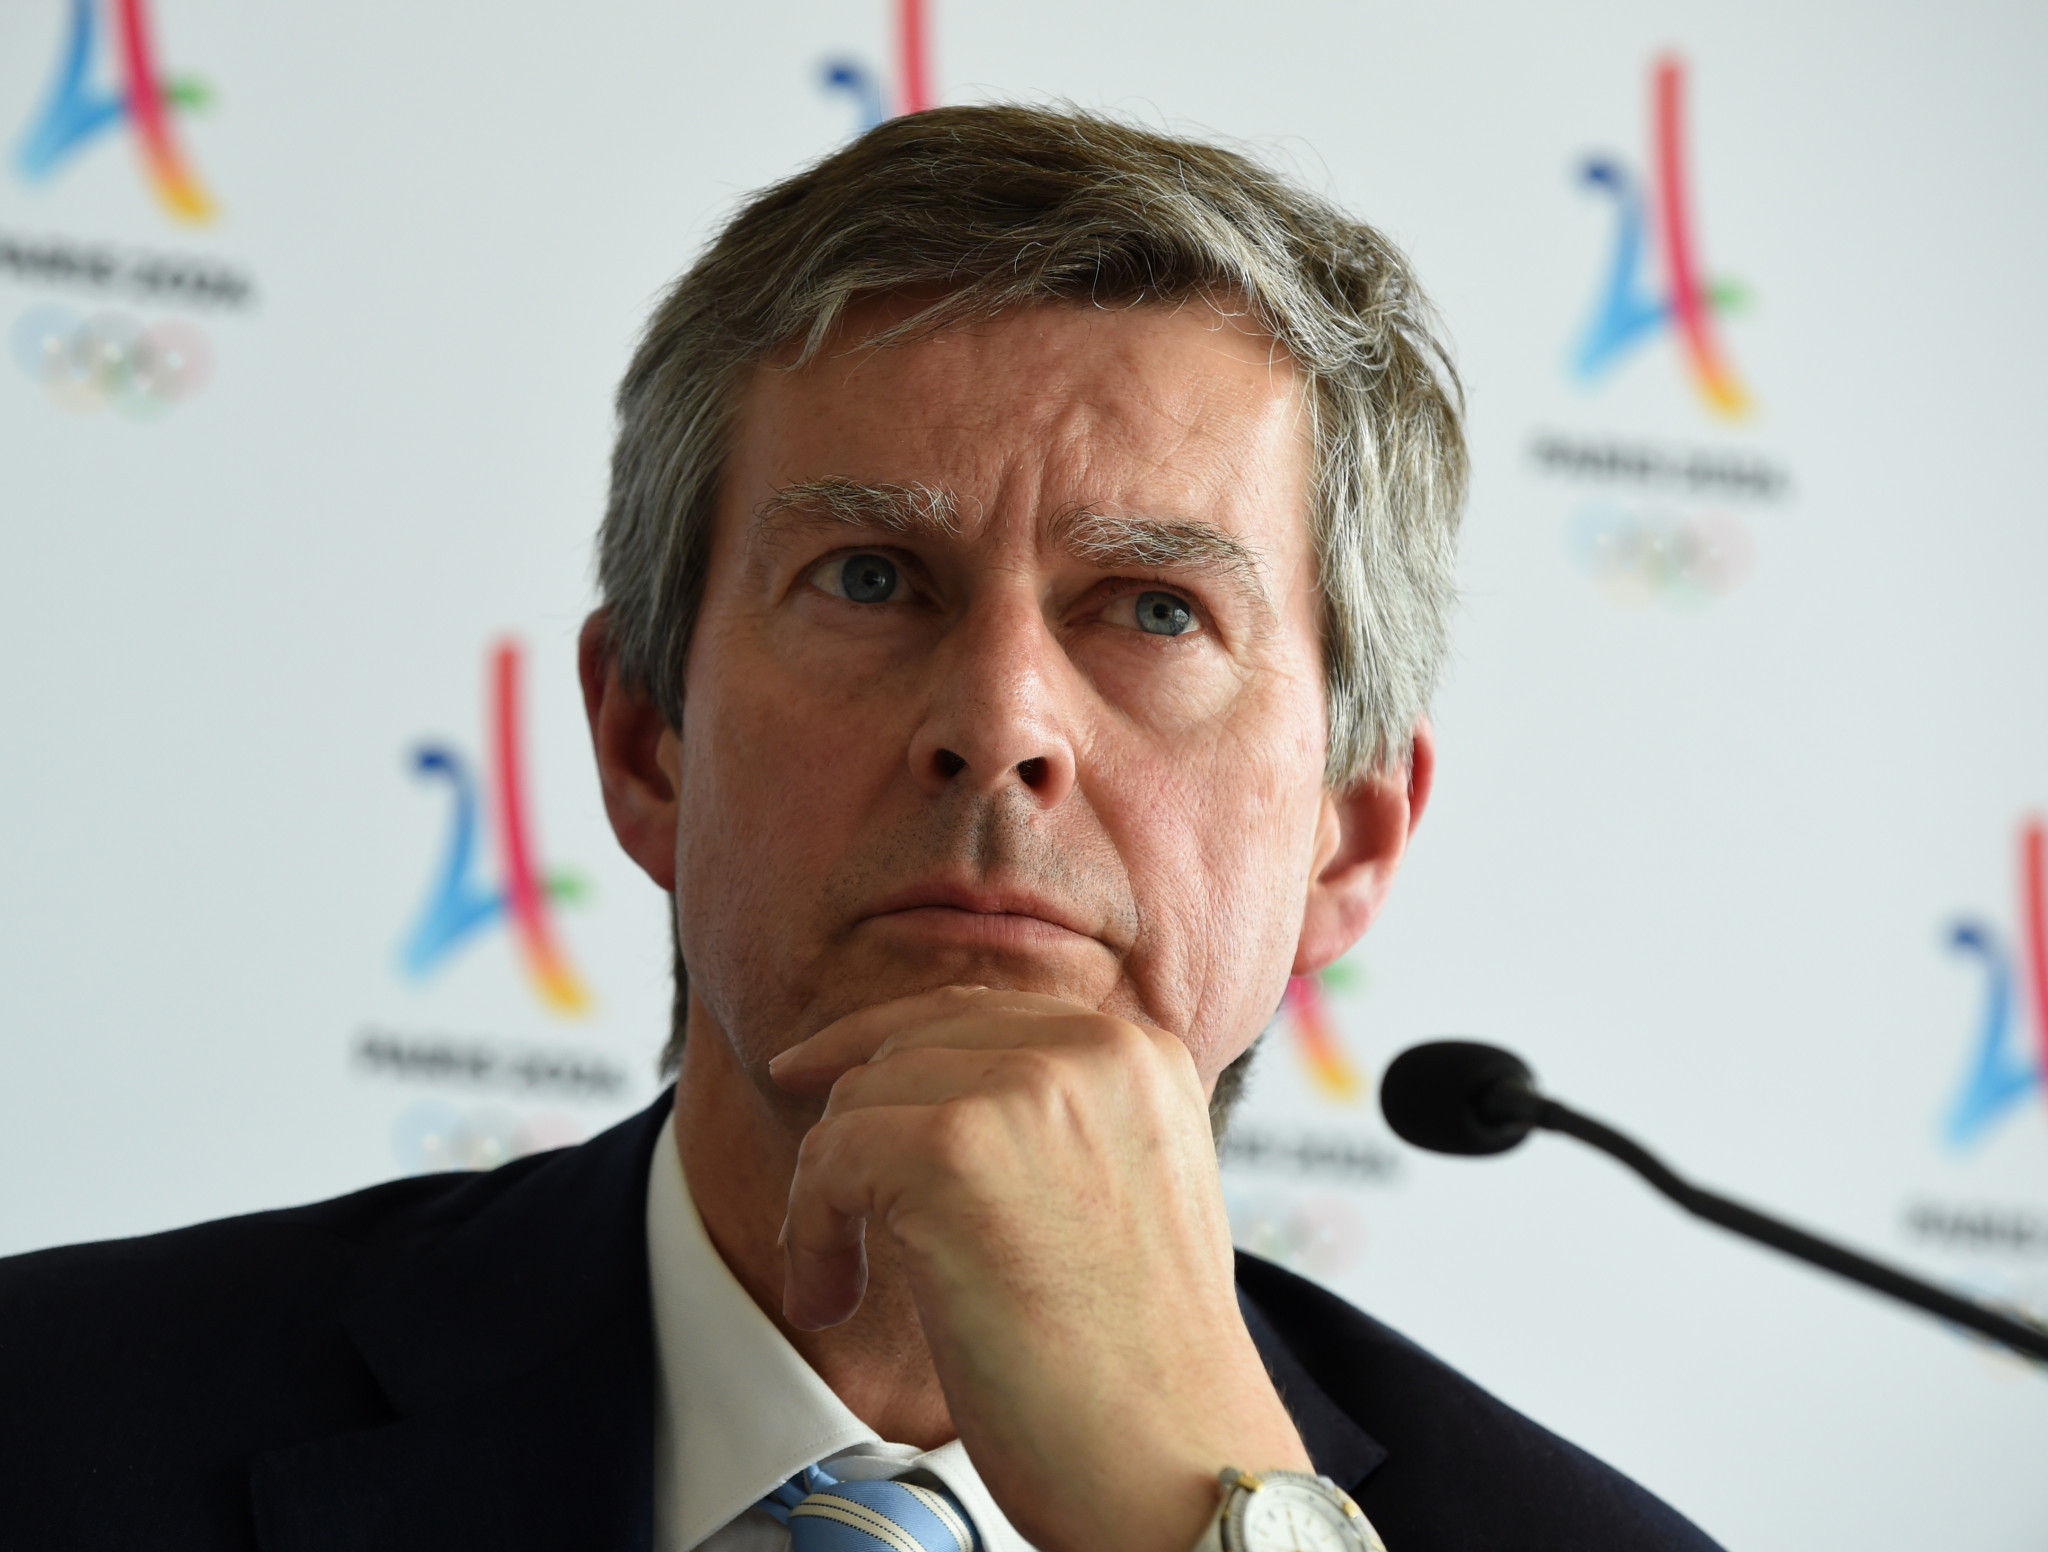 The current BOIC Board and President Pierre-Olivier Beckers-Vieujant will remain in place until after Tokyo 2020 next year ©Getty Images